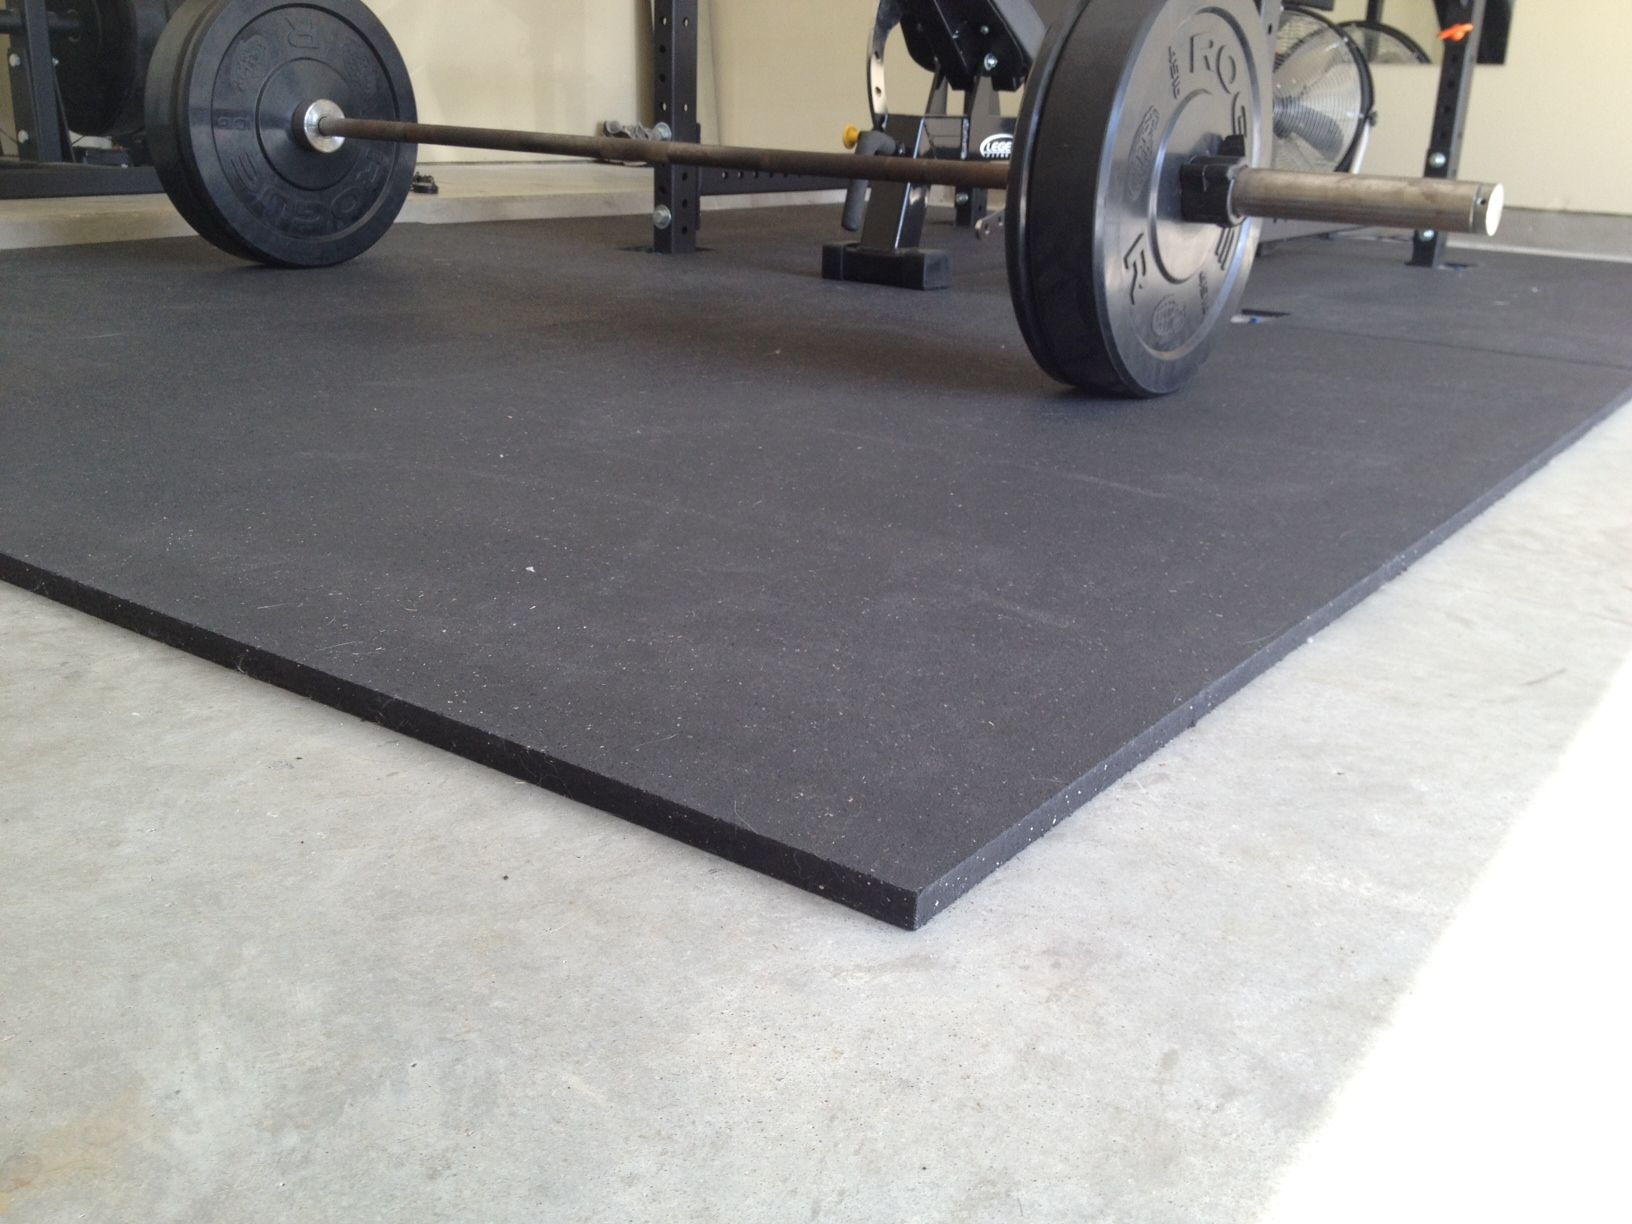 Rubber gym mats for my garage flooring fitness